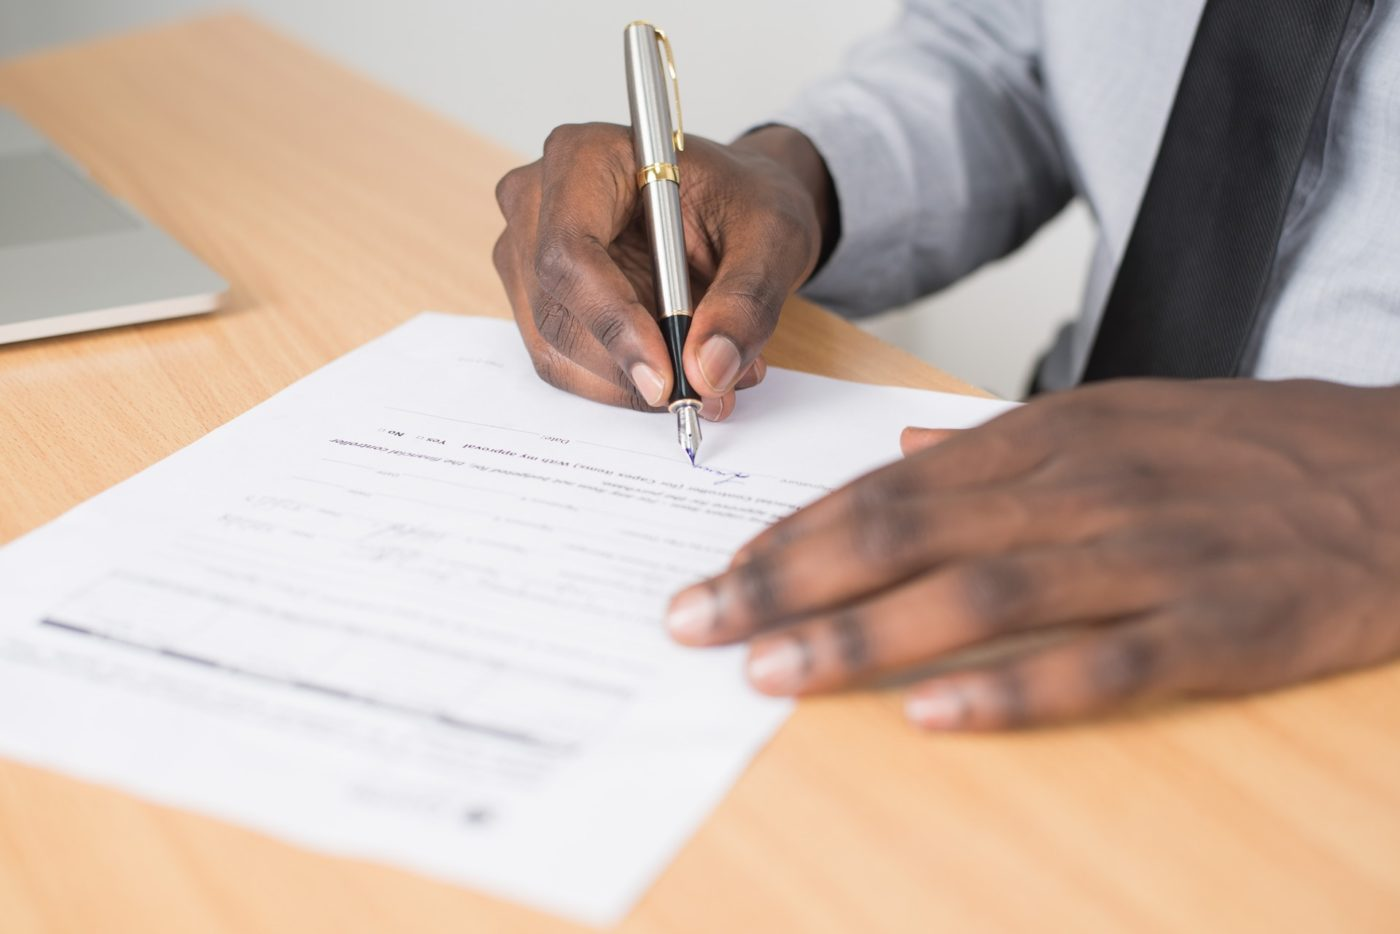 Person Signing Paperwork by Cytonn Photography via Pexels